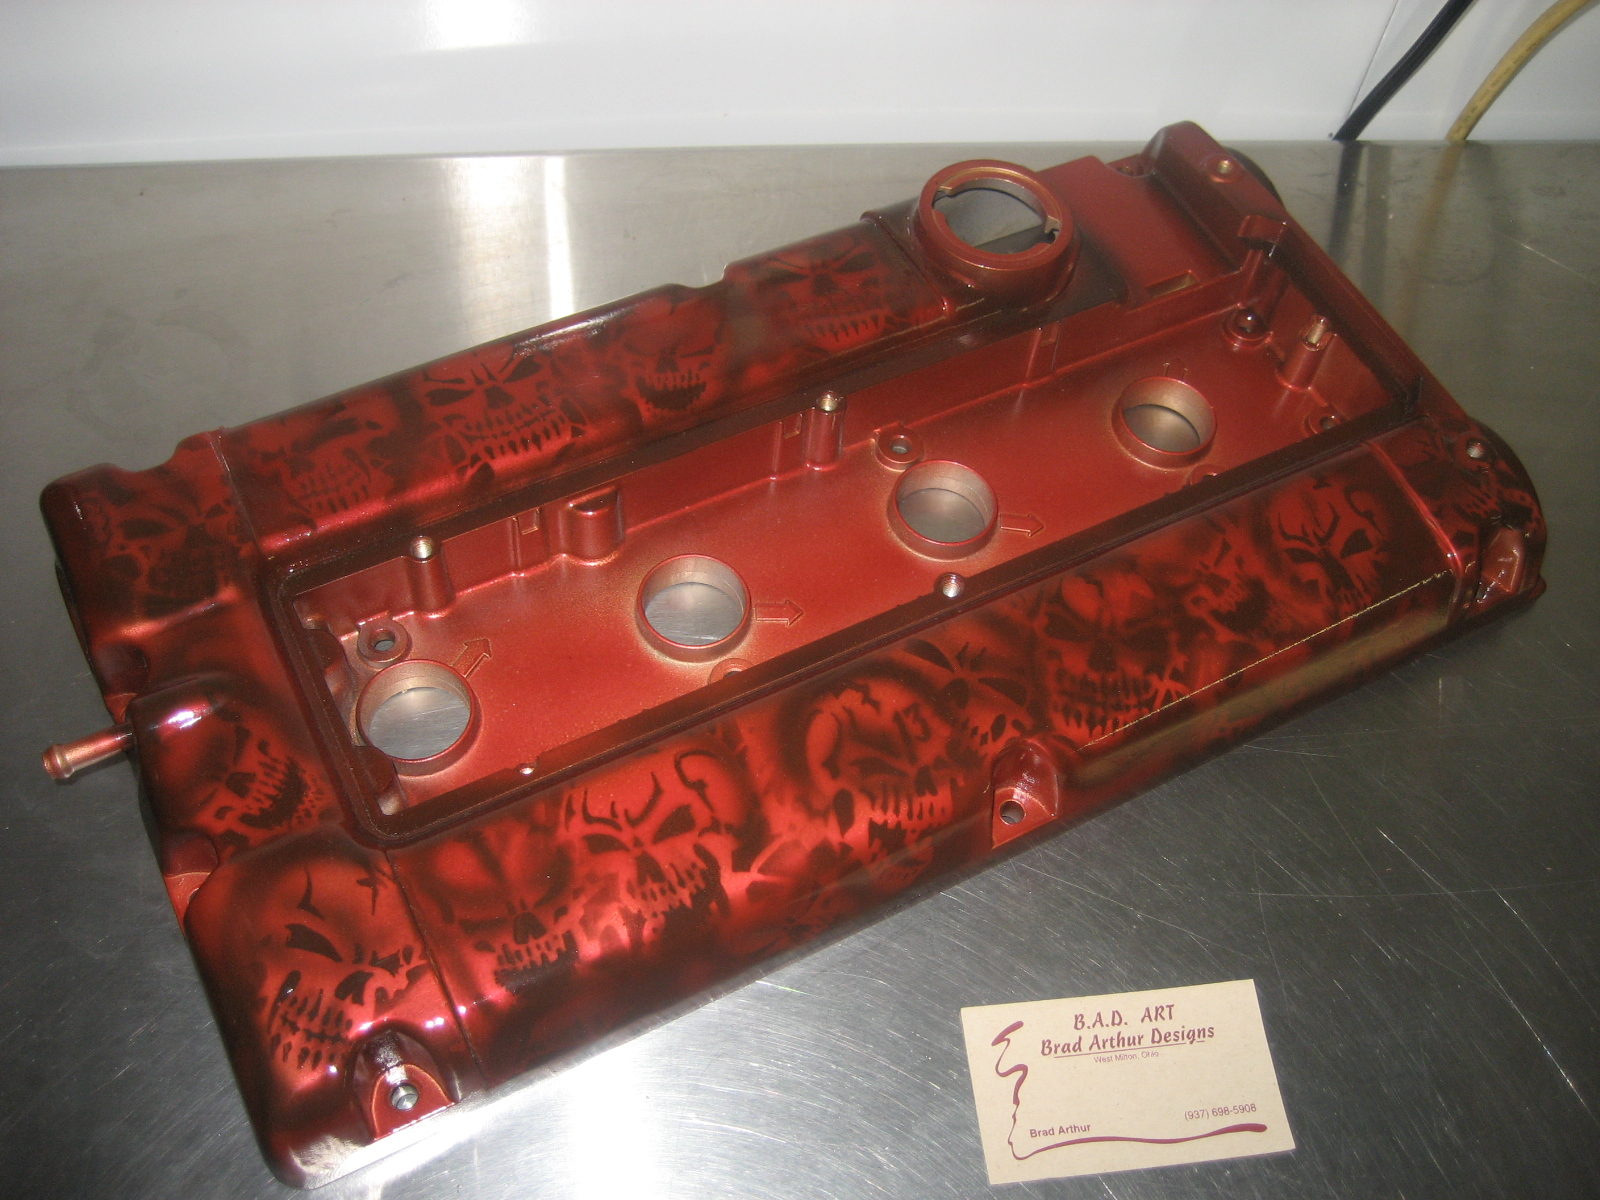 Jay Racing Skulls Valve Cover